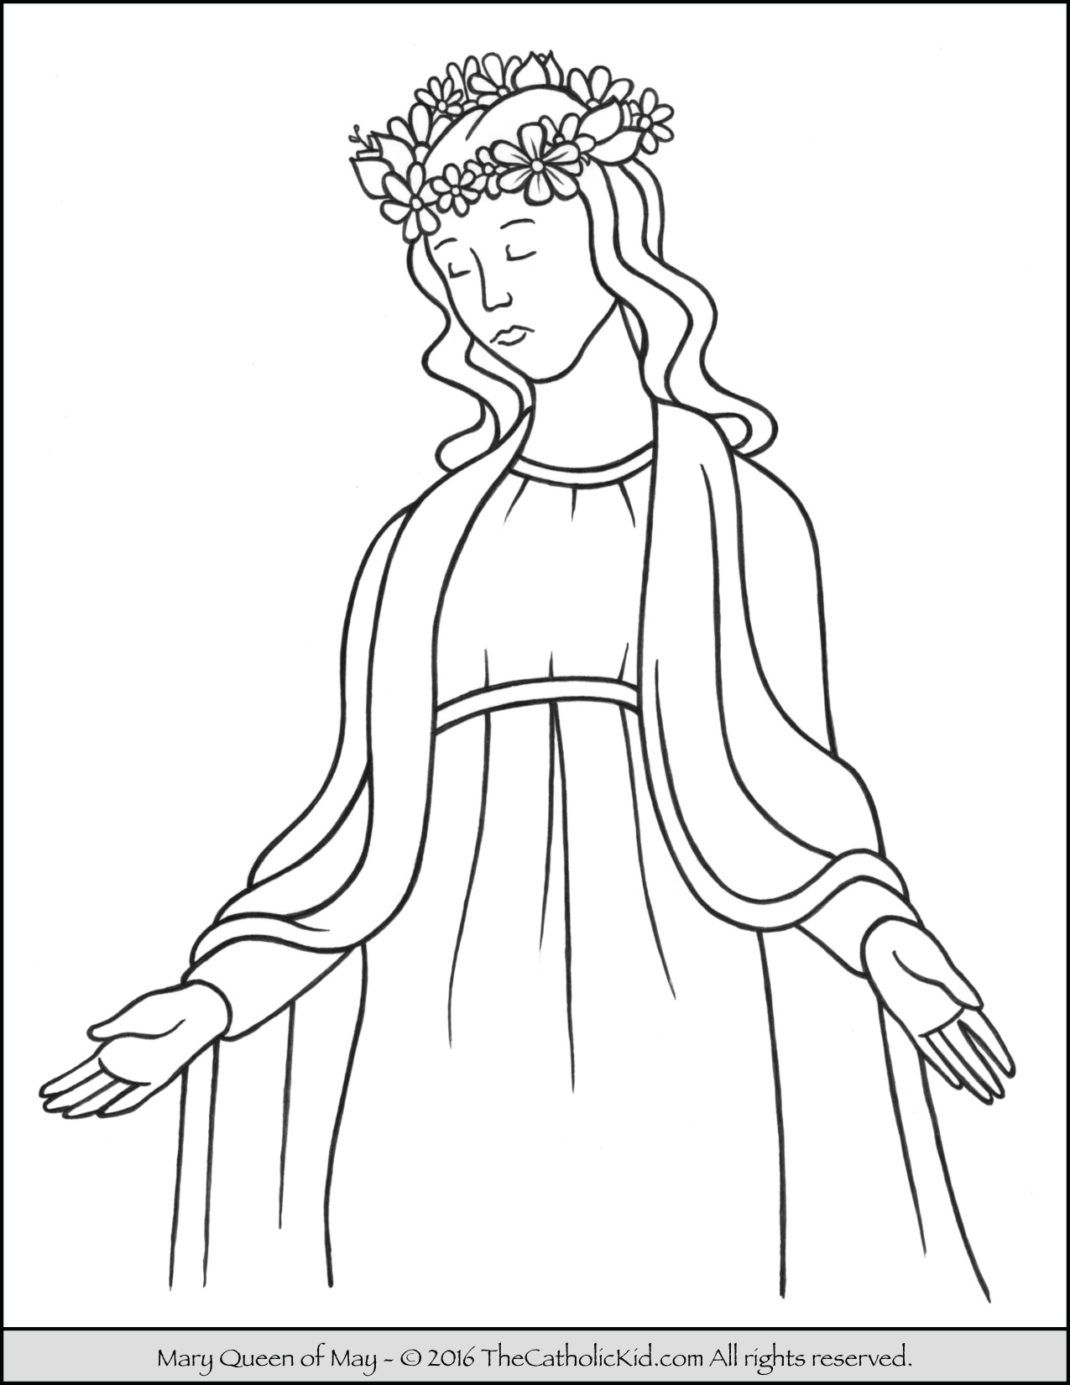 Uncategorized Hail Mary Coloring Page mary queen of may crowning coloring page pages page